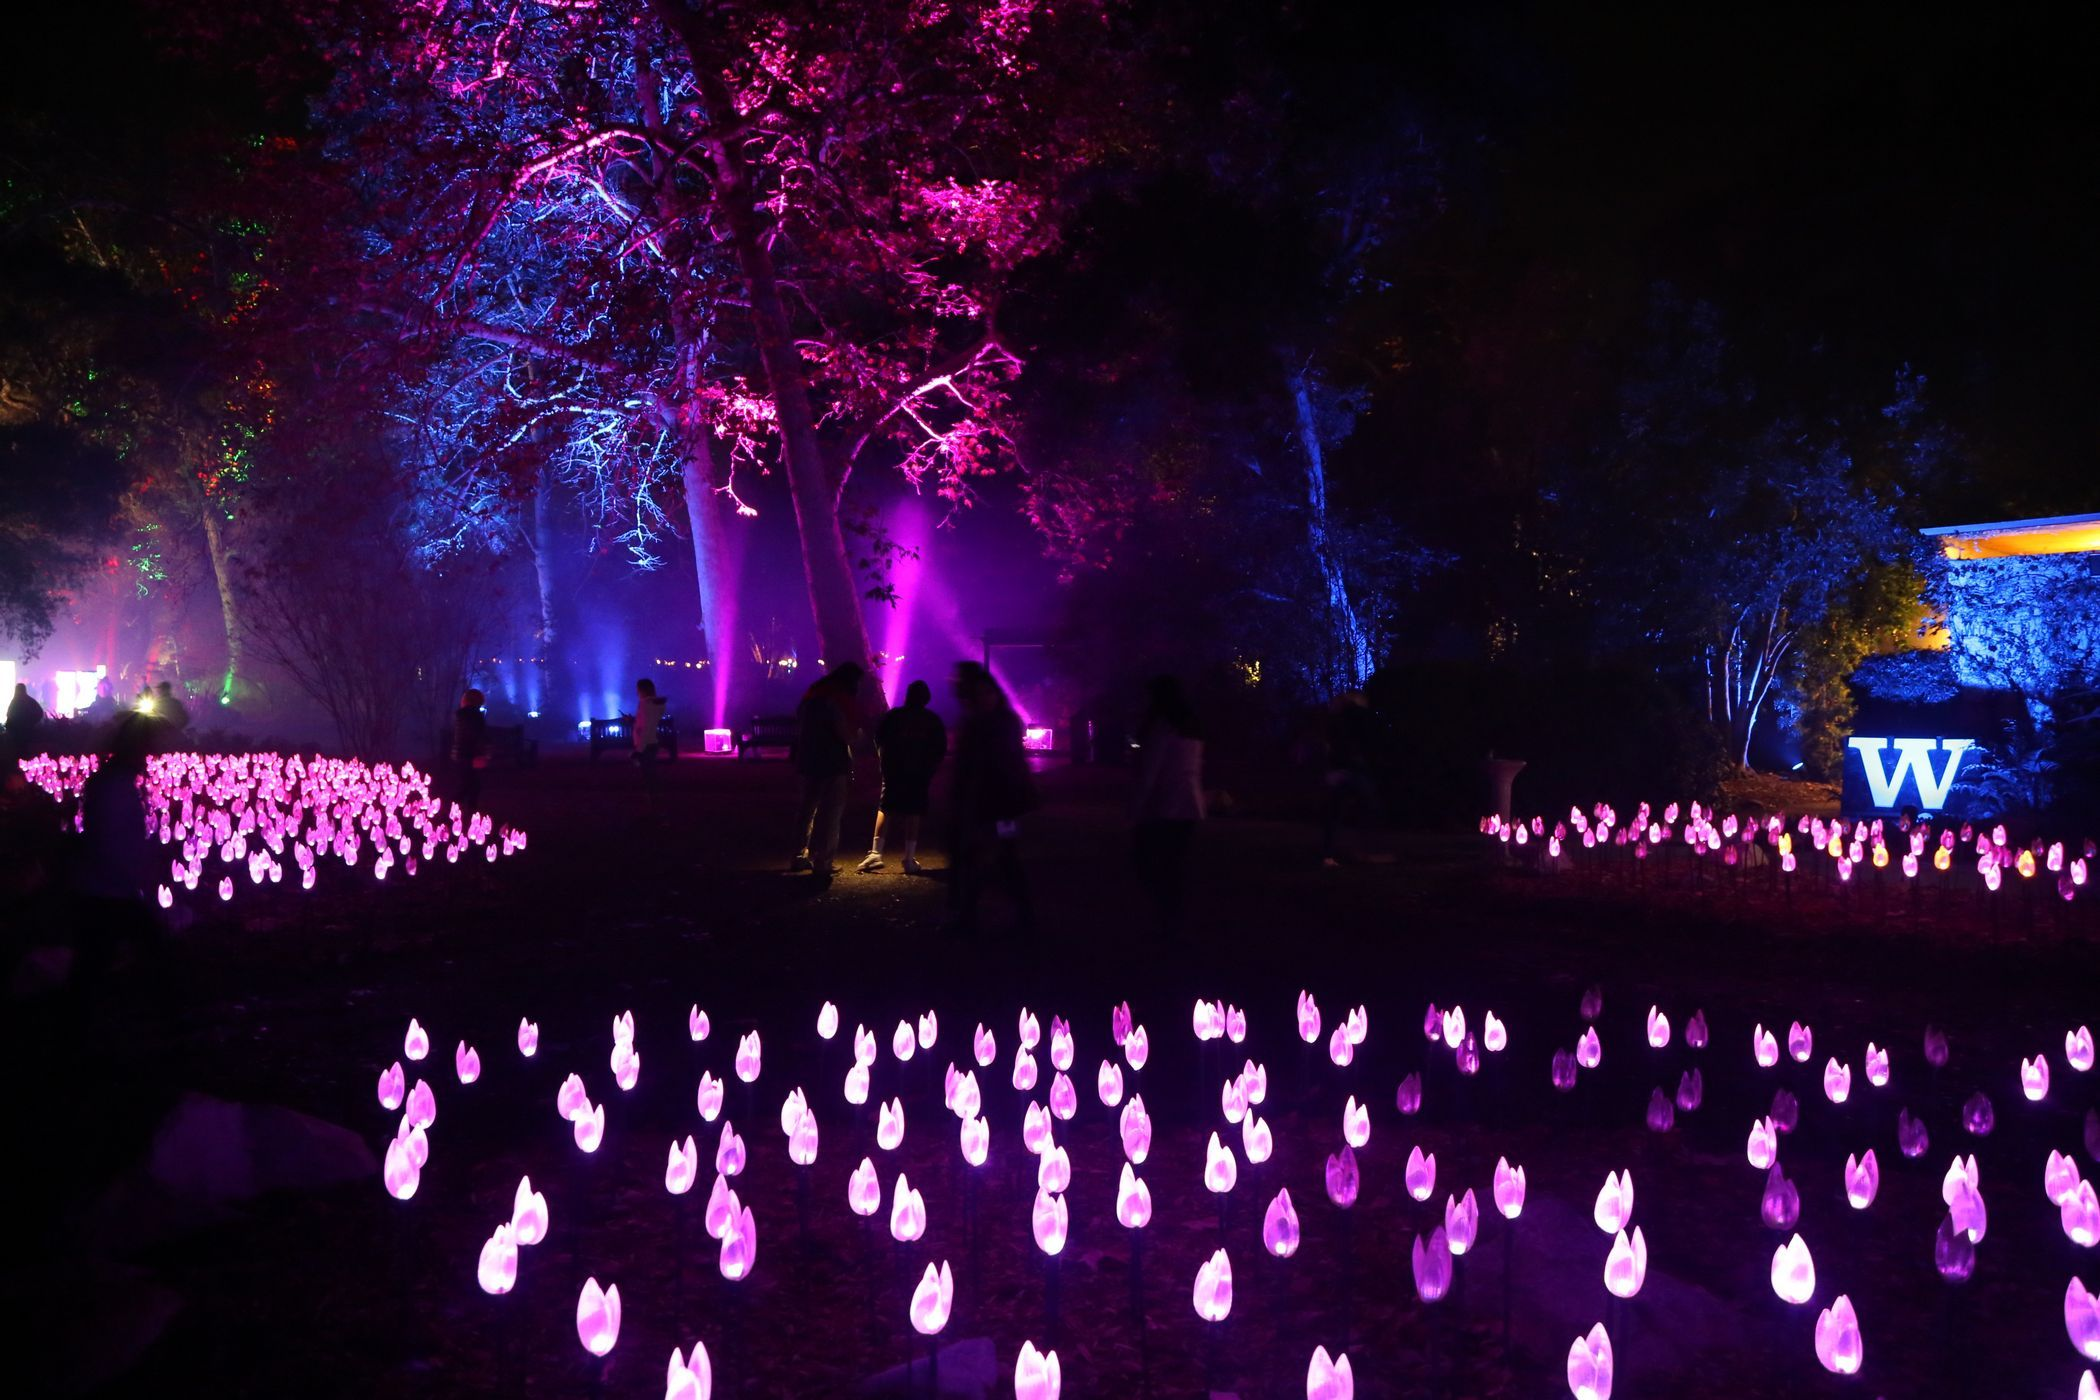 10b6f48875adb1290e75f5777f3354a6 - Enchanted Forest Of Lights At Descanso Gardens